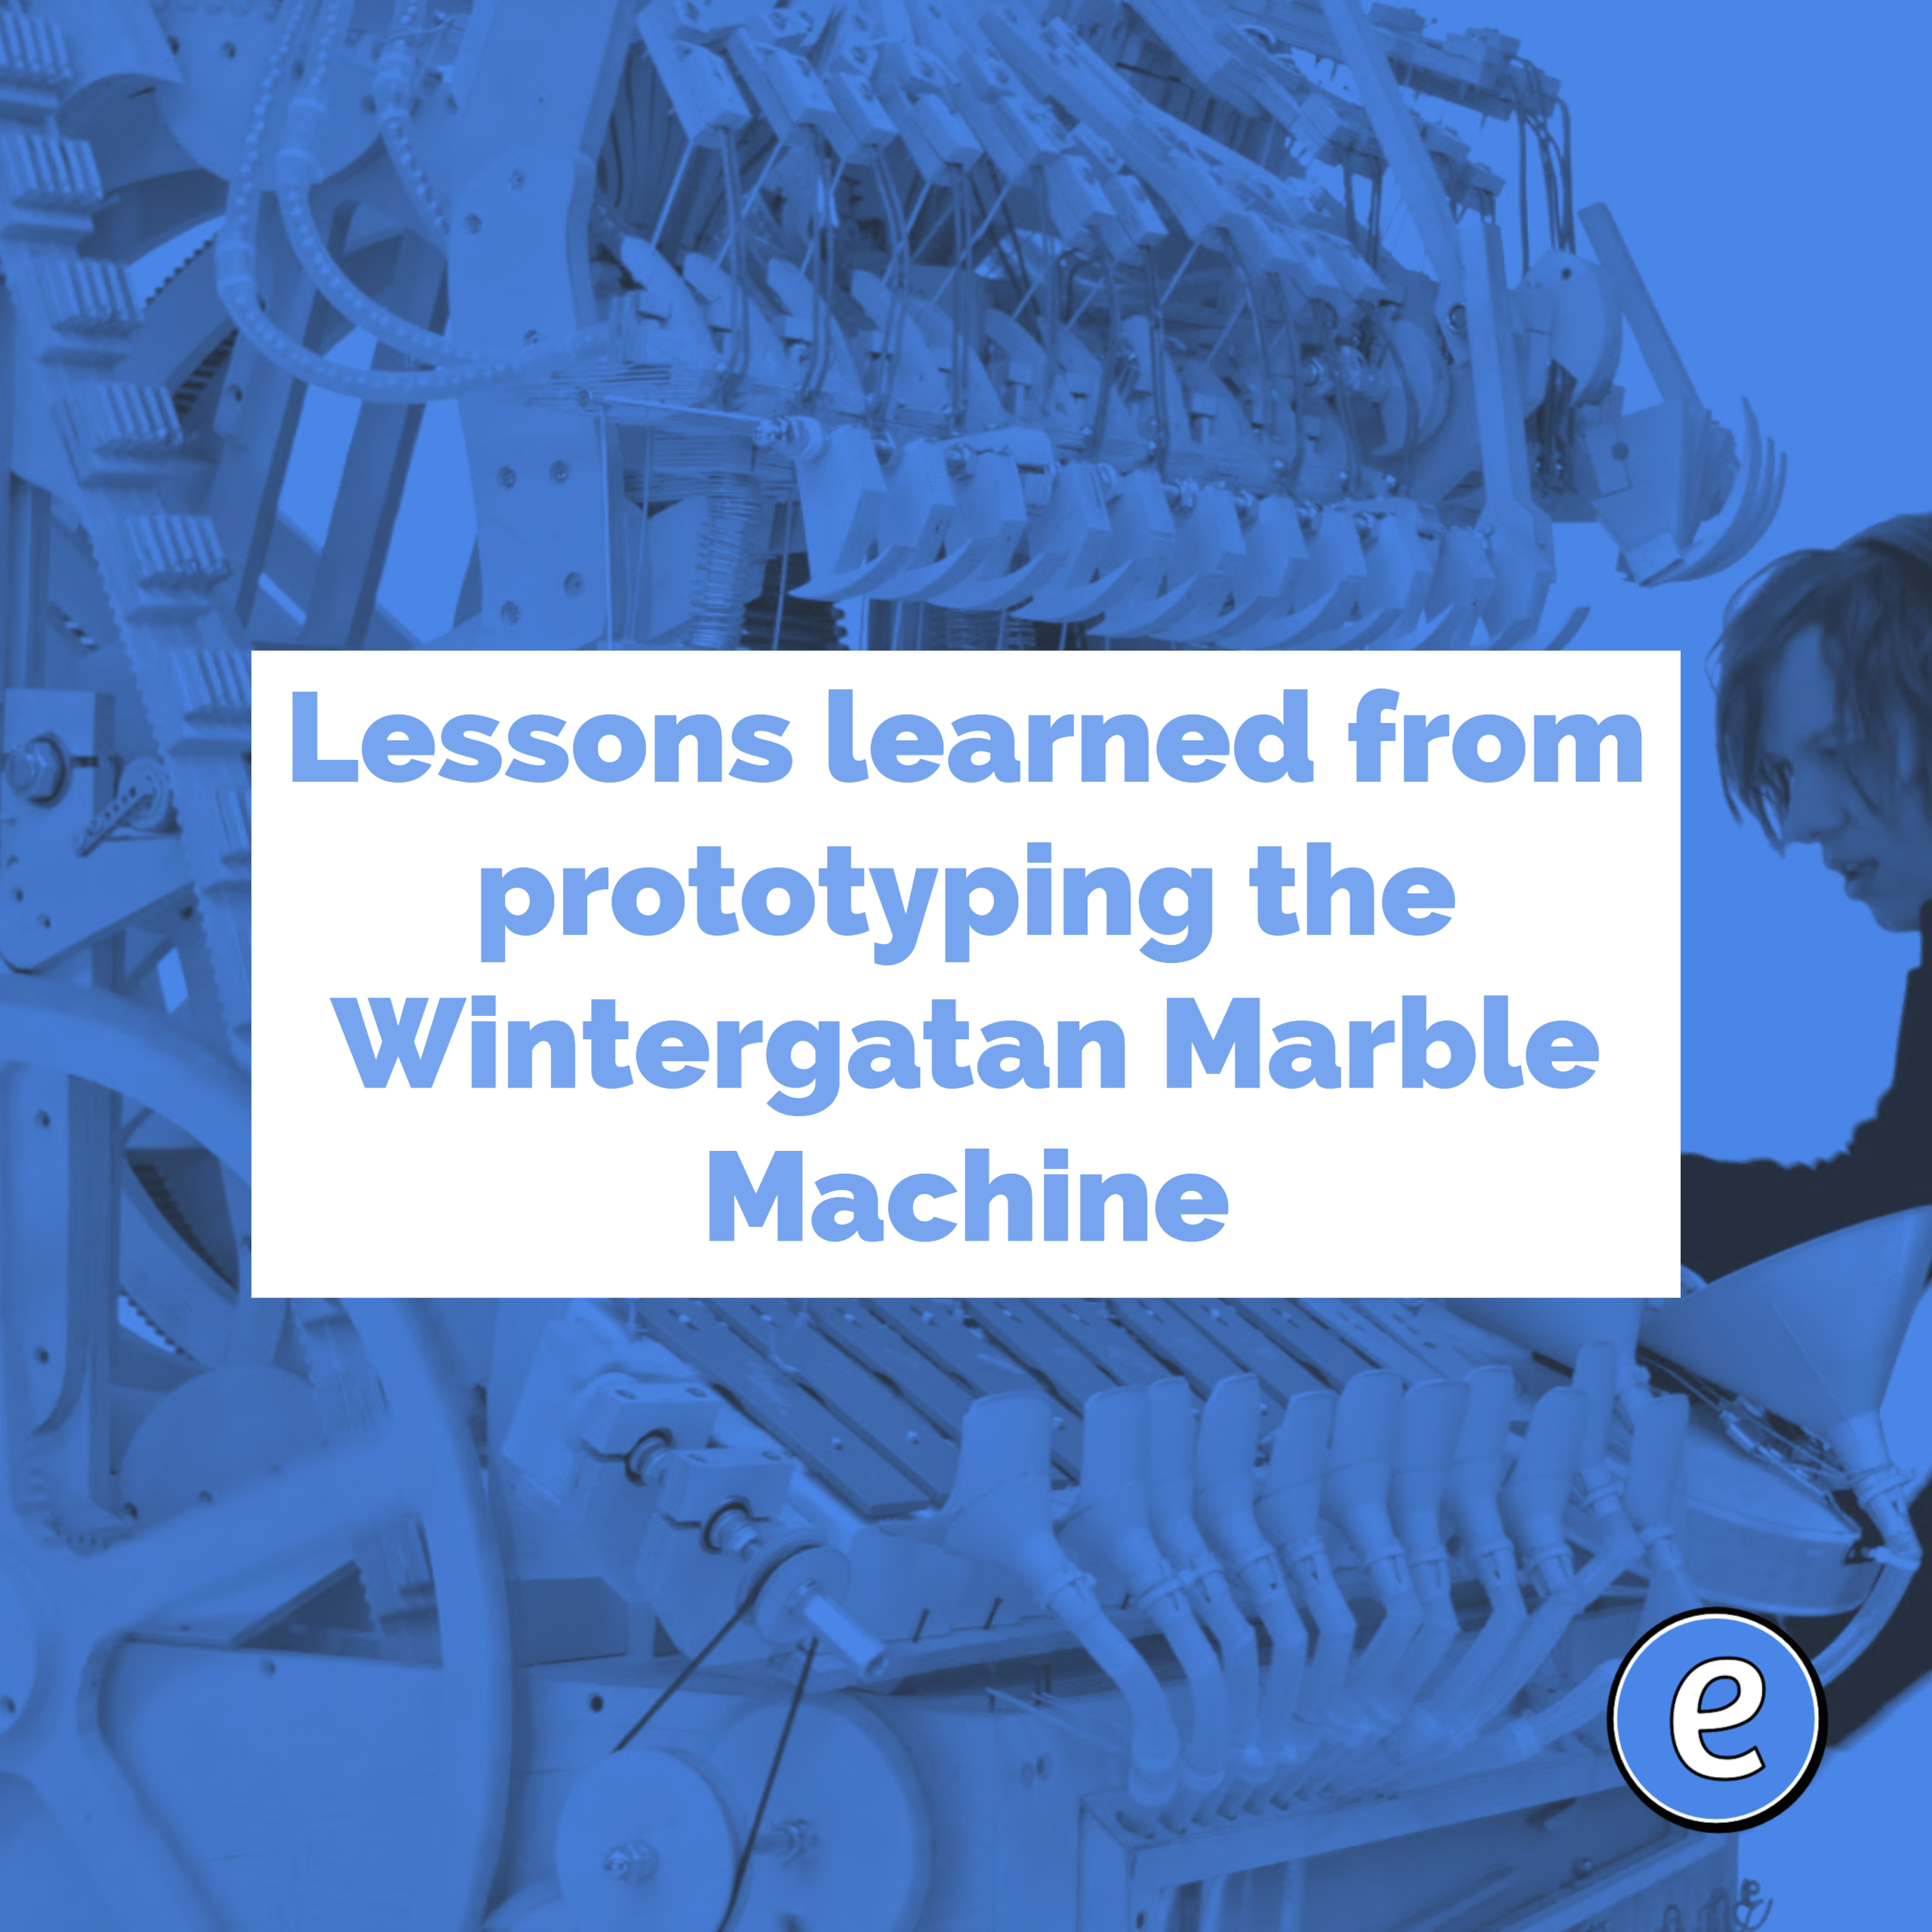 Lessons learned from prototyping the Wintergatan Marble Machine